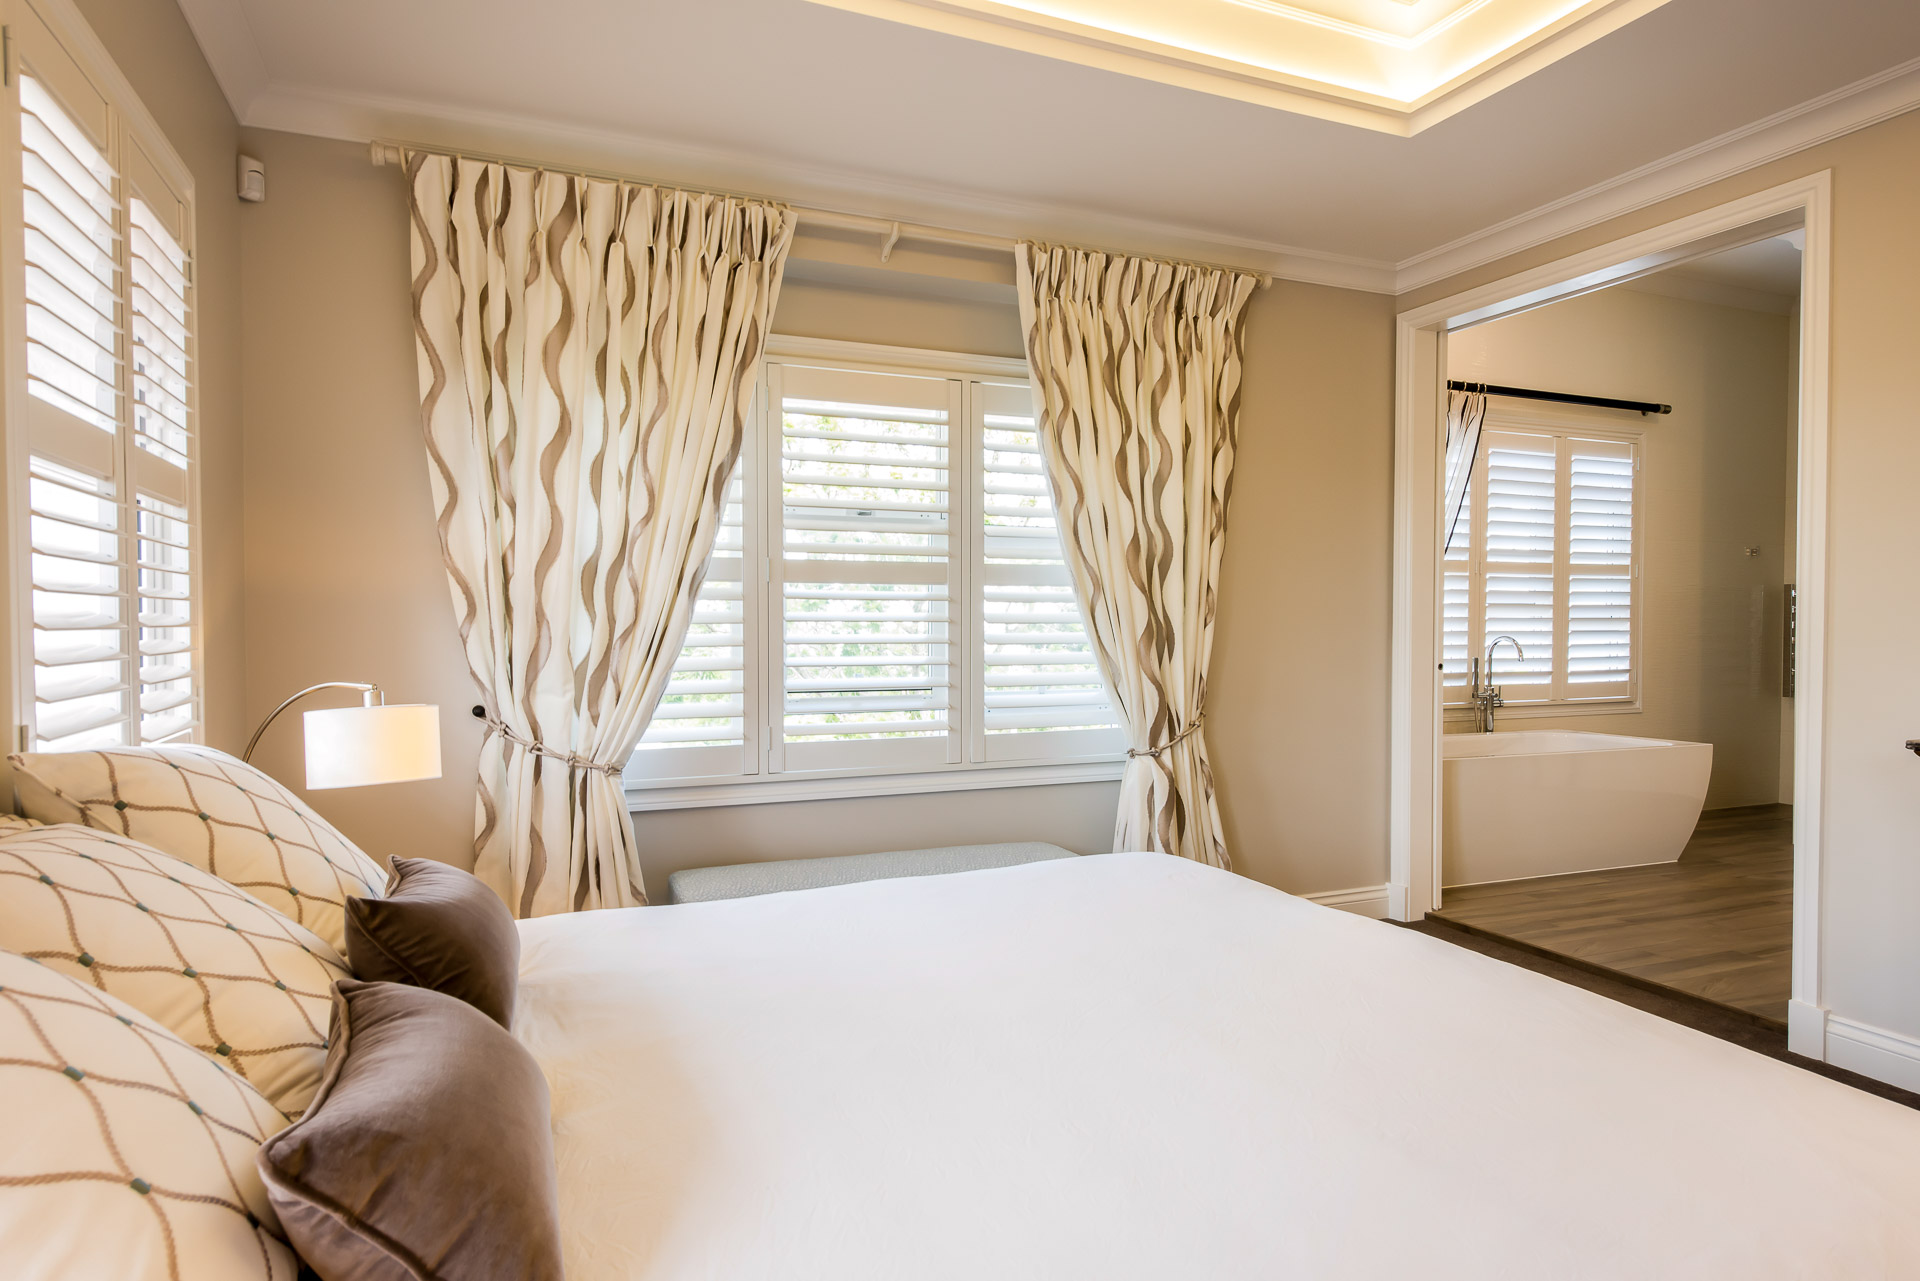 Luxury bedroom, architecture, luxury interiors, minka joinery, Cowan Constructions, brisbane, queensland